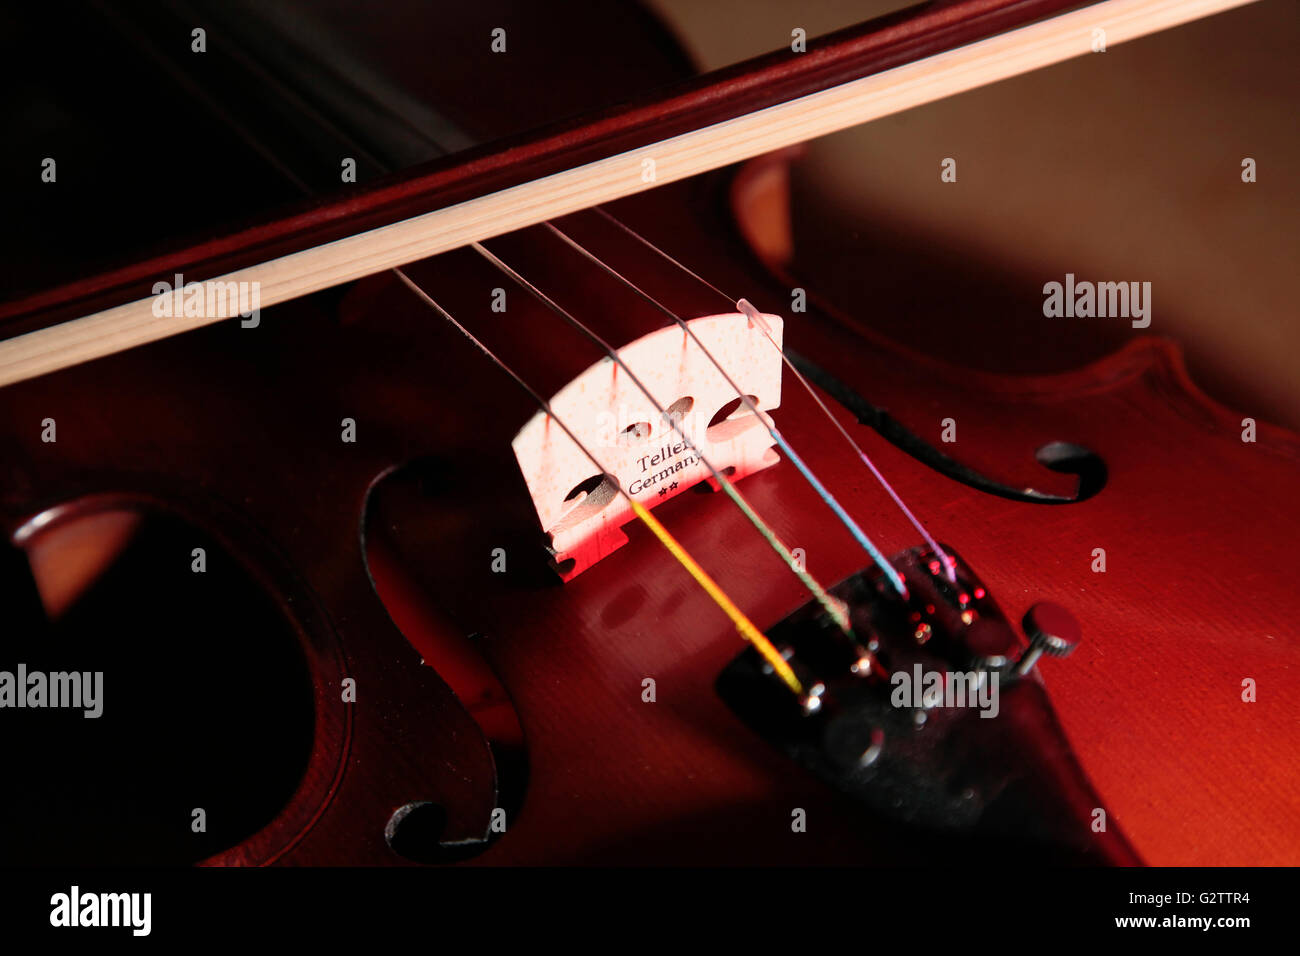 Music, Instruments, Strings, Close up detail of Violin showing bridge and strings. - Stock Image